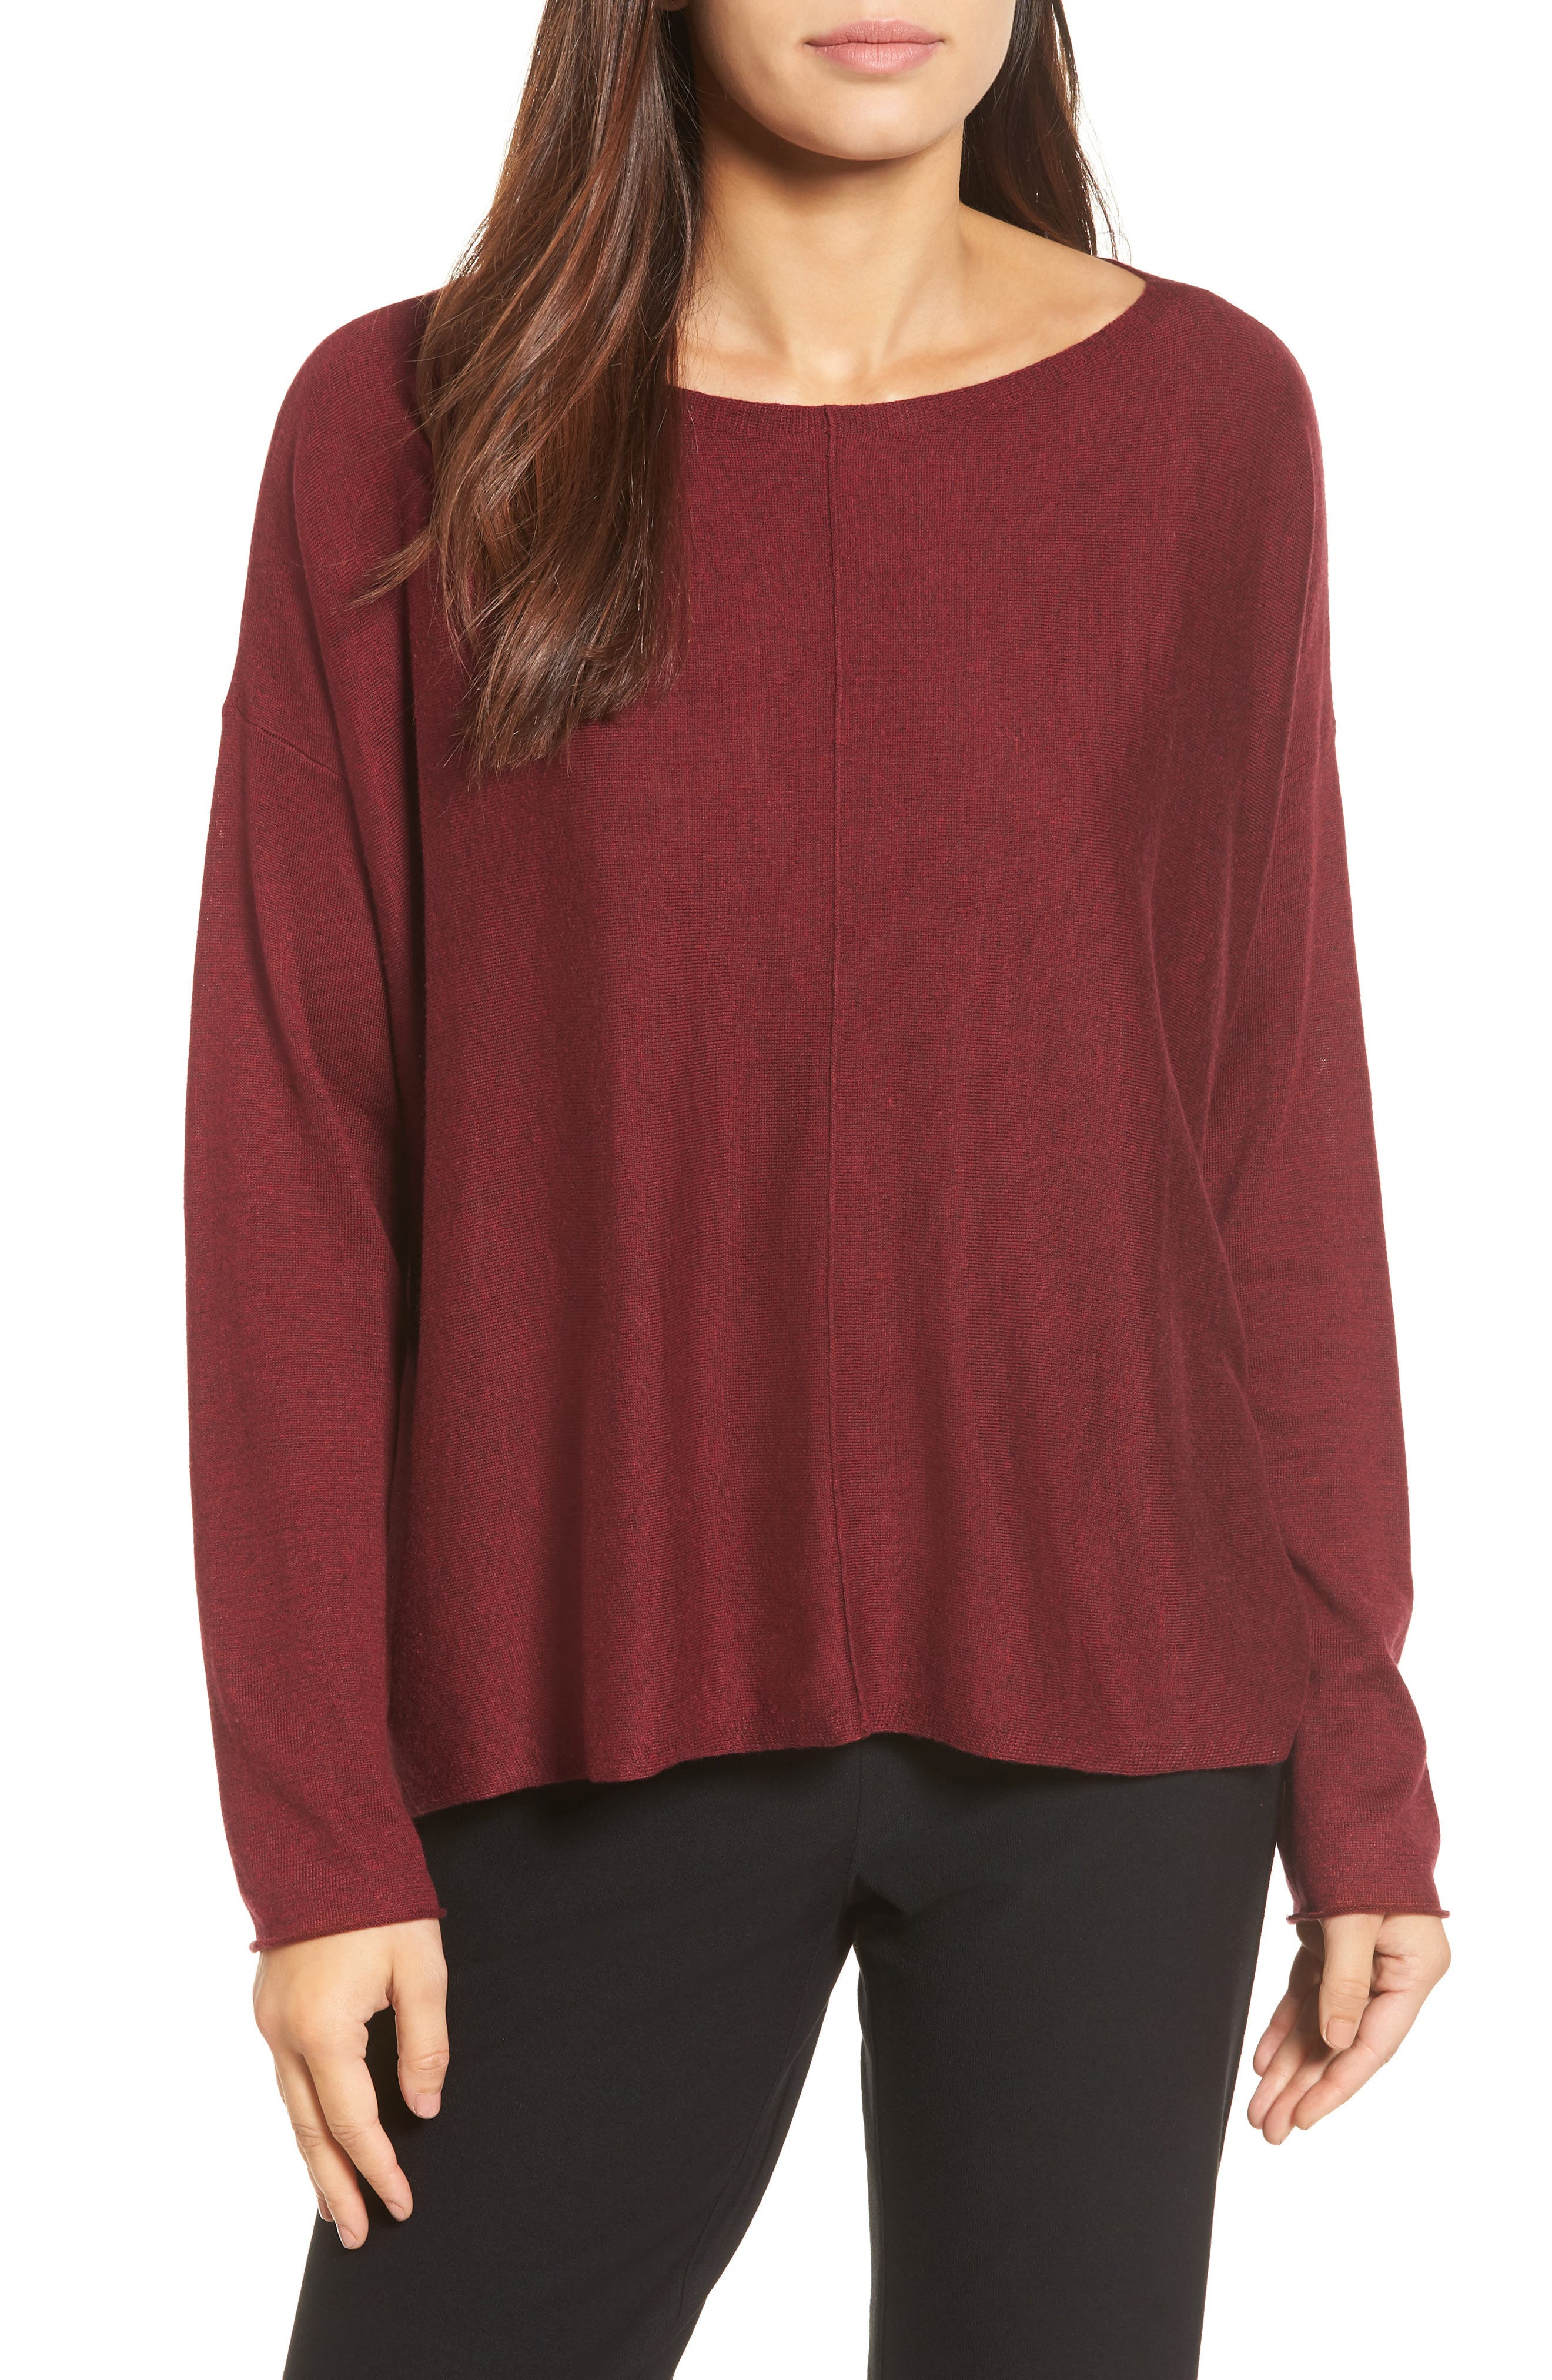 Tencel<sup>®</sup> Lyocell Blend High/Low Sweater,                             Main thumbnail 1, color,                             Claret